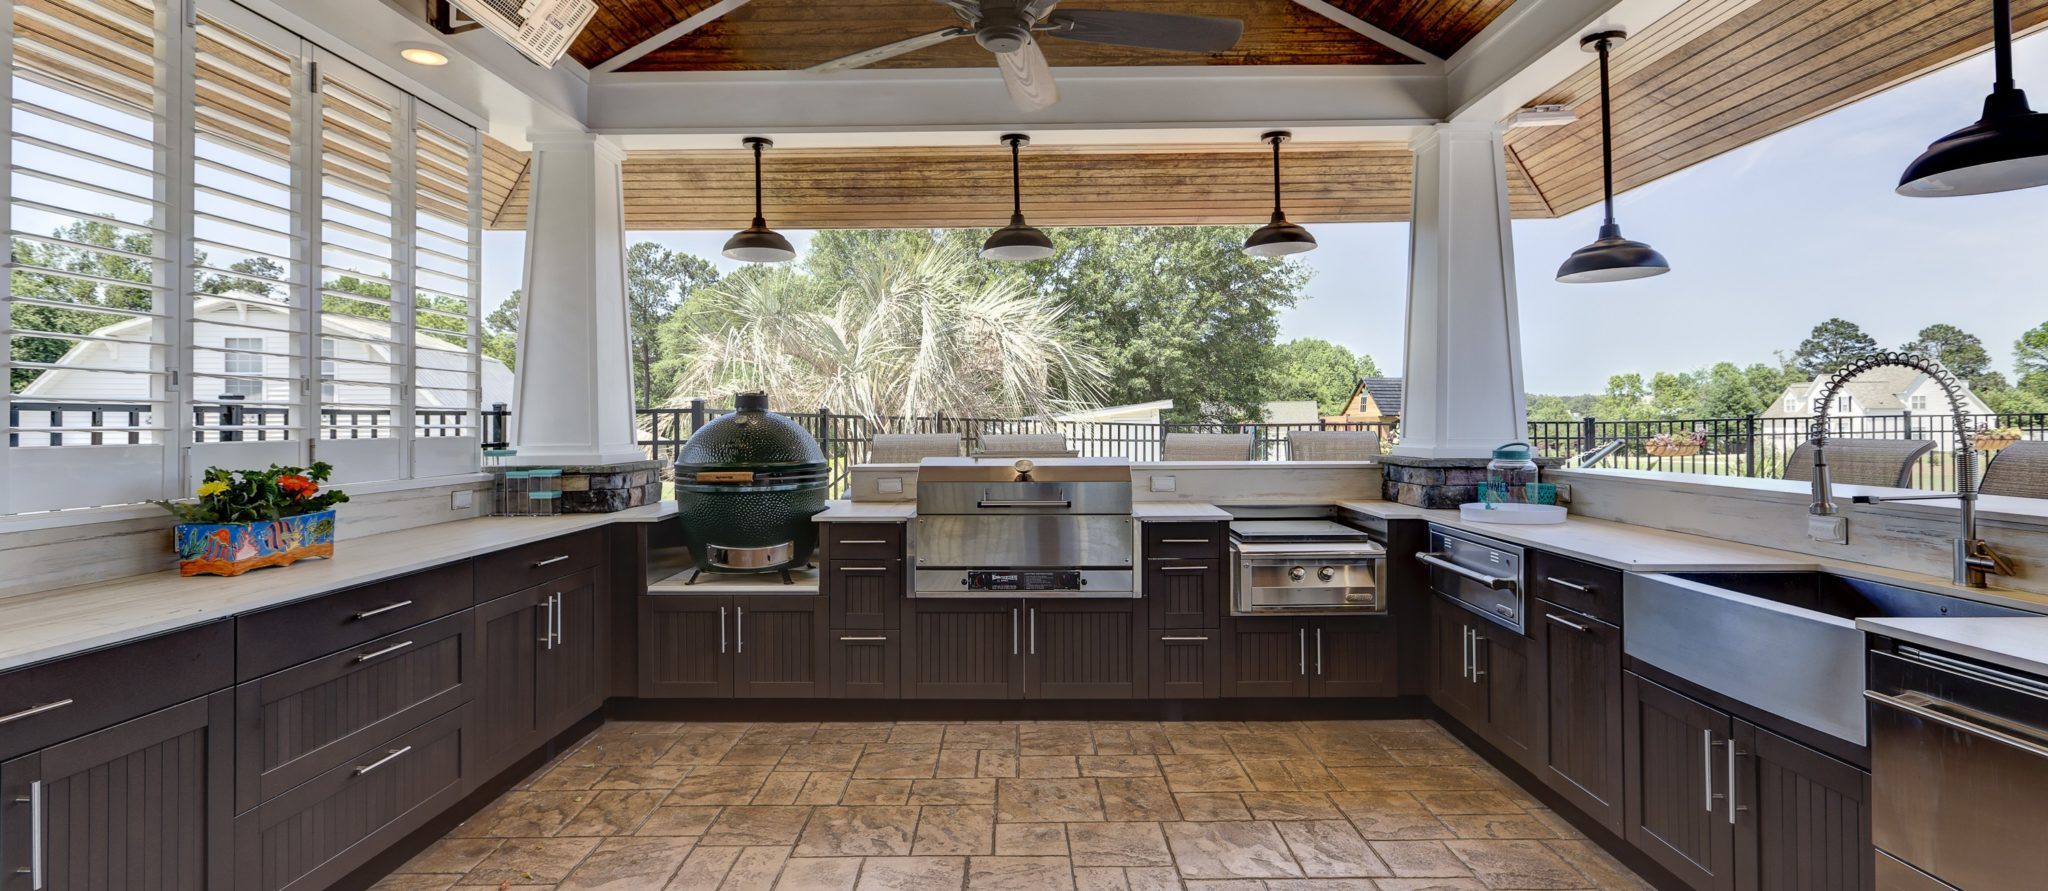 Outdoor Kitchen Cabinets & Counters | Distinctive Outdoor Kitchens NC